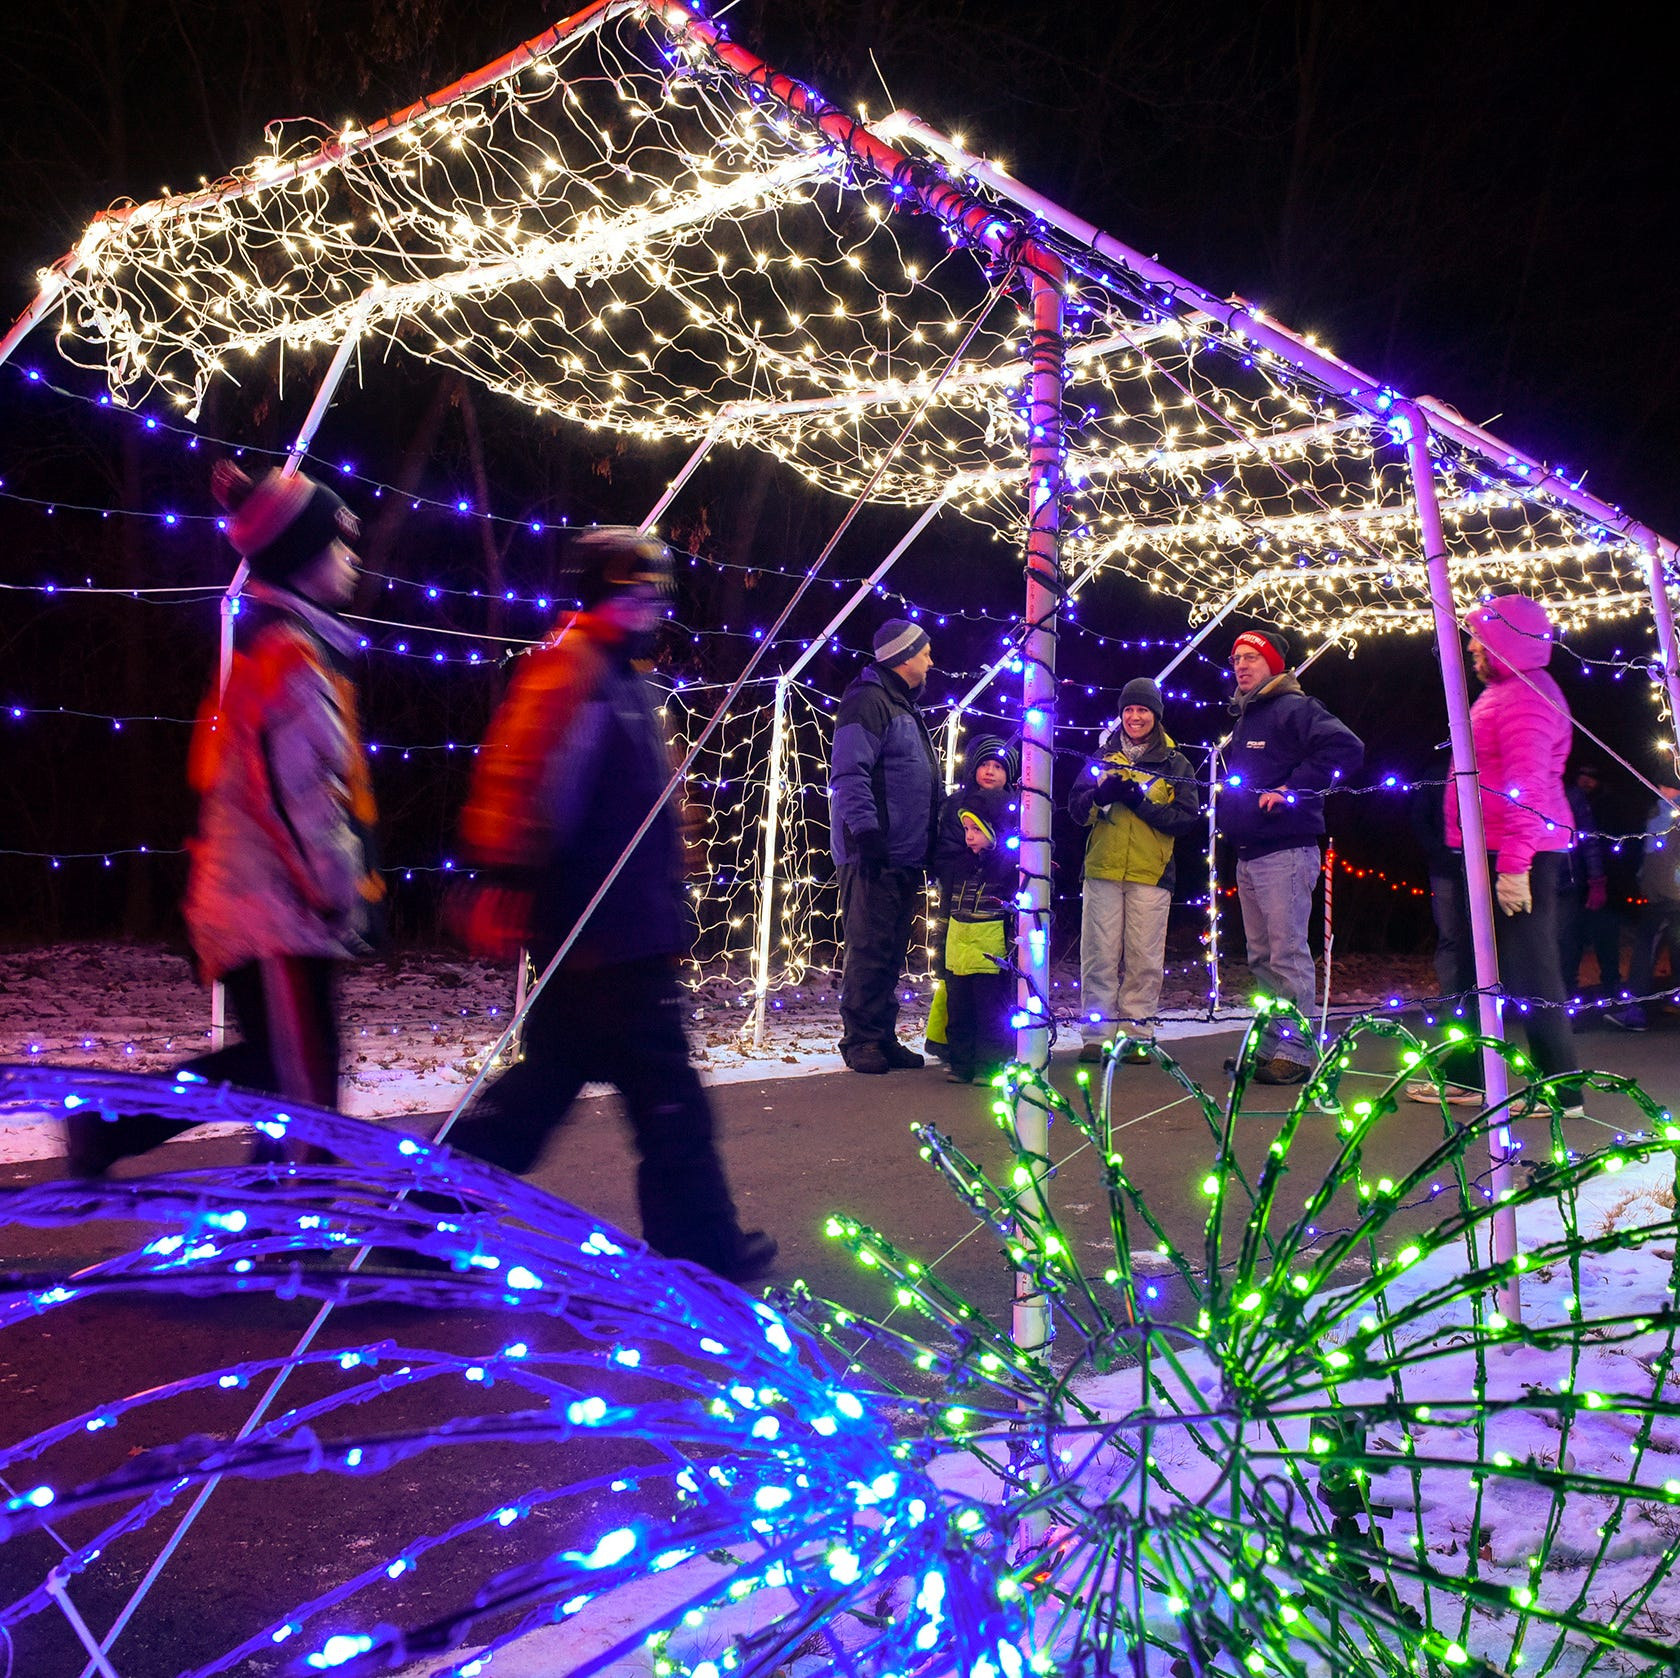 Sartell Country Lights Festival brings holiday cheer to thousands in its second year